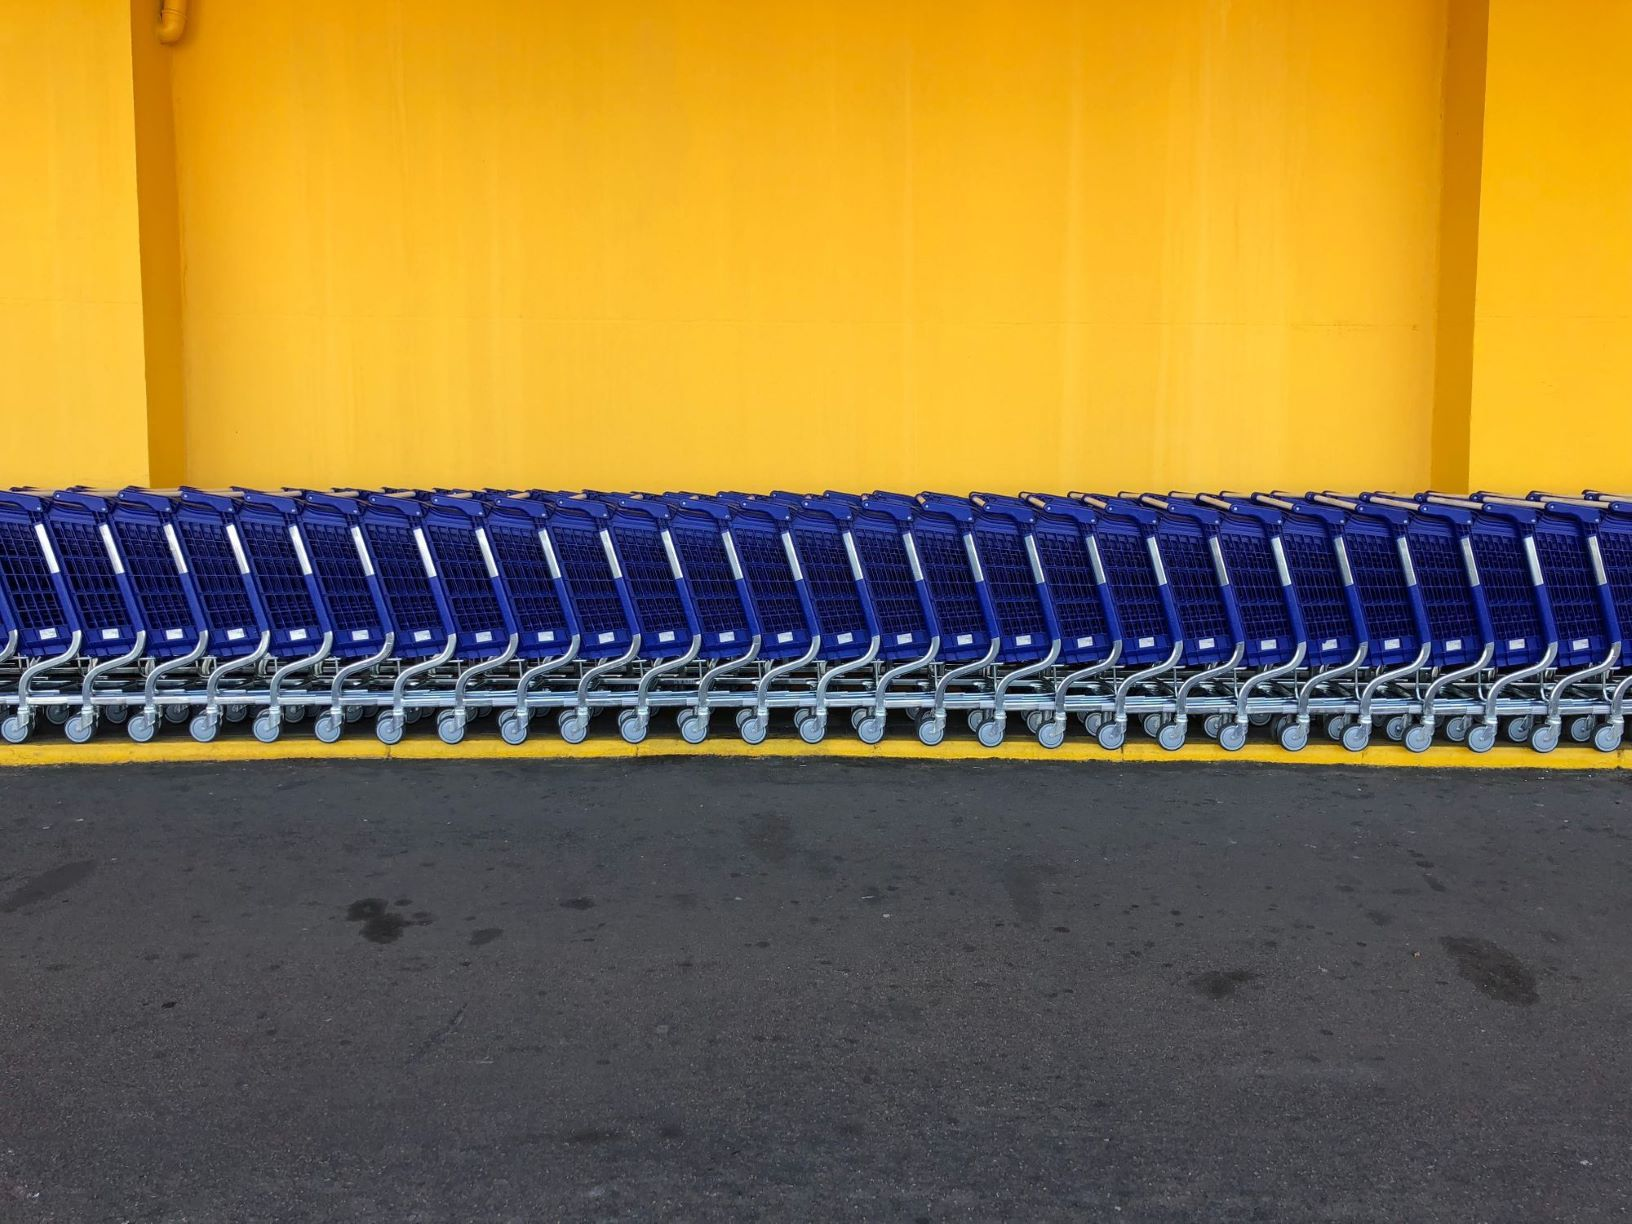 Walmart Launches Blockchain-Based Payment and Freight Network